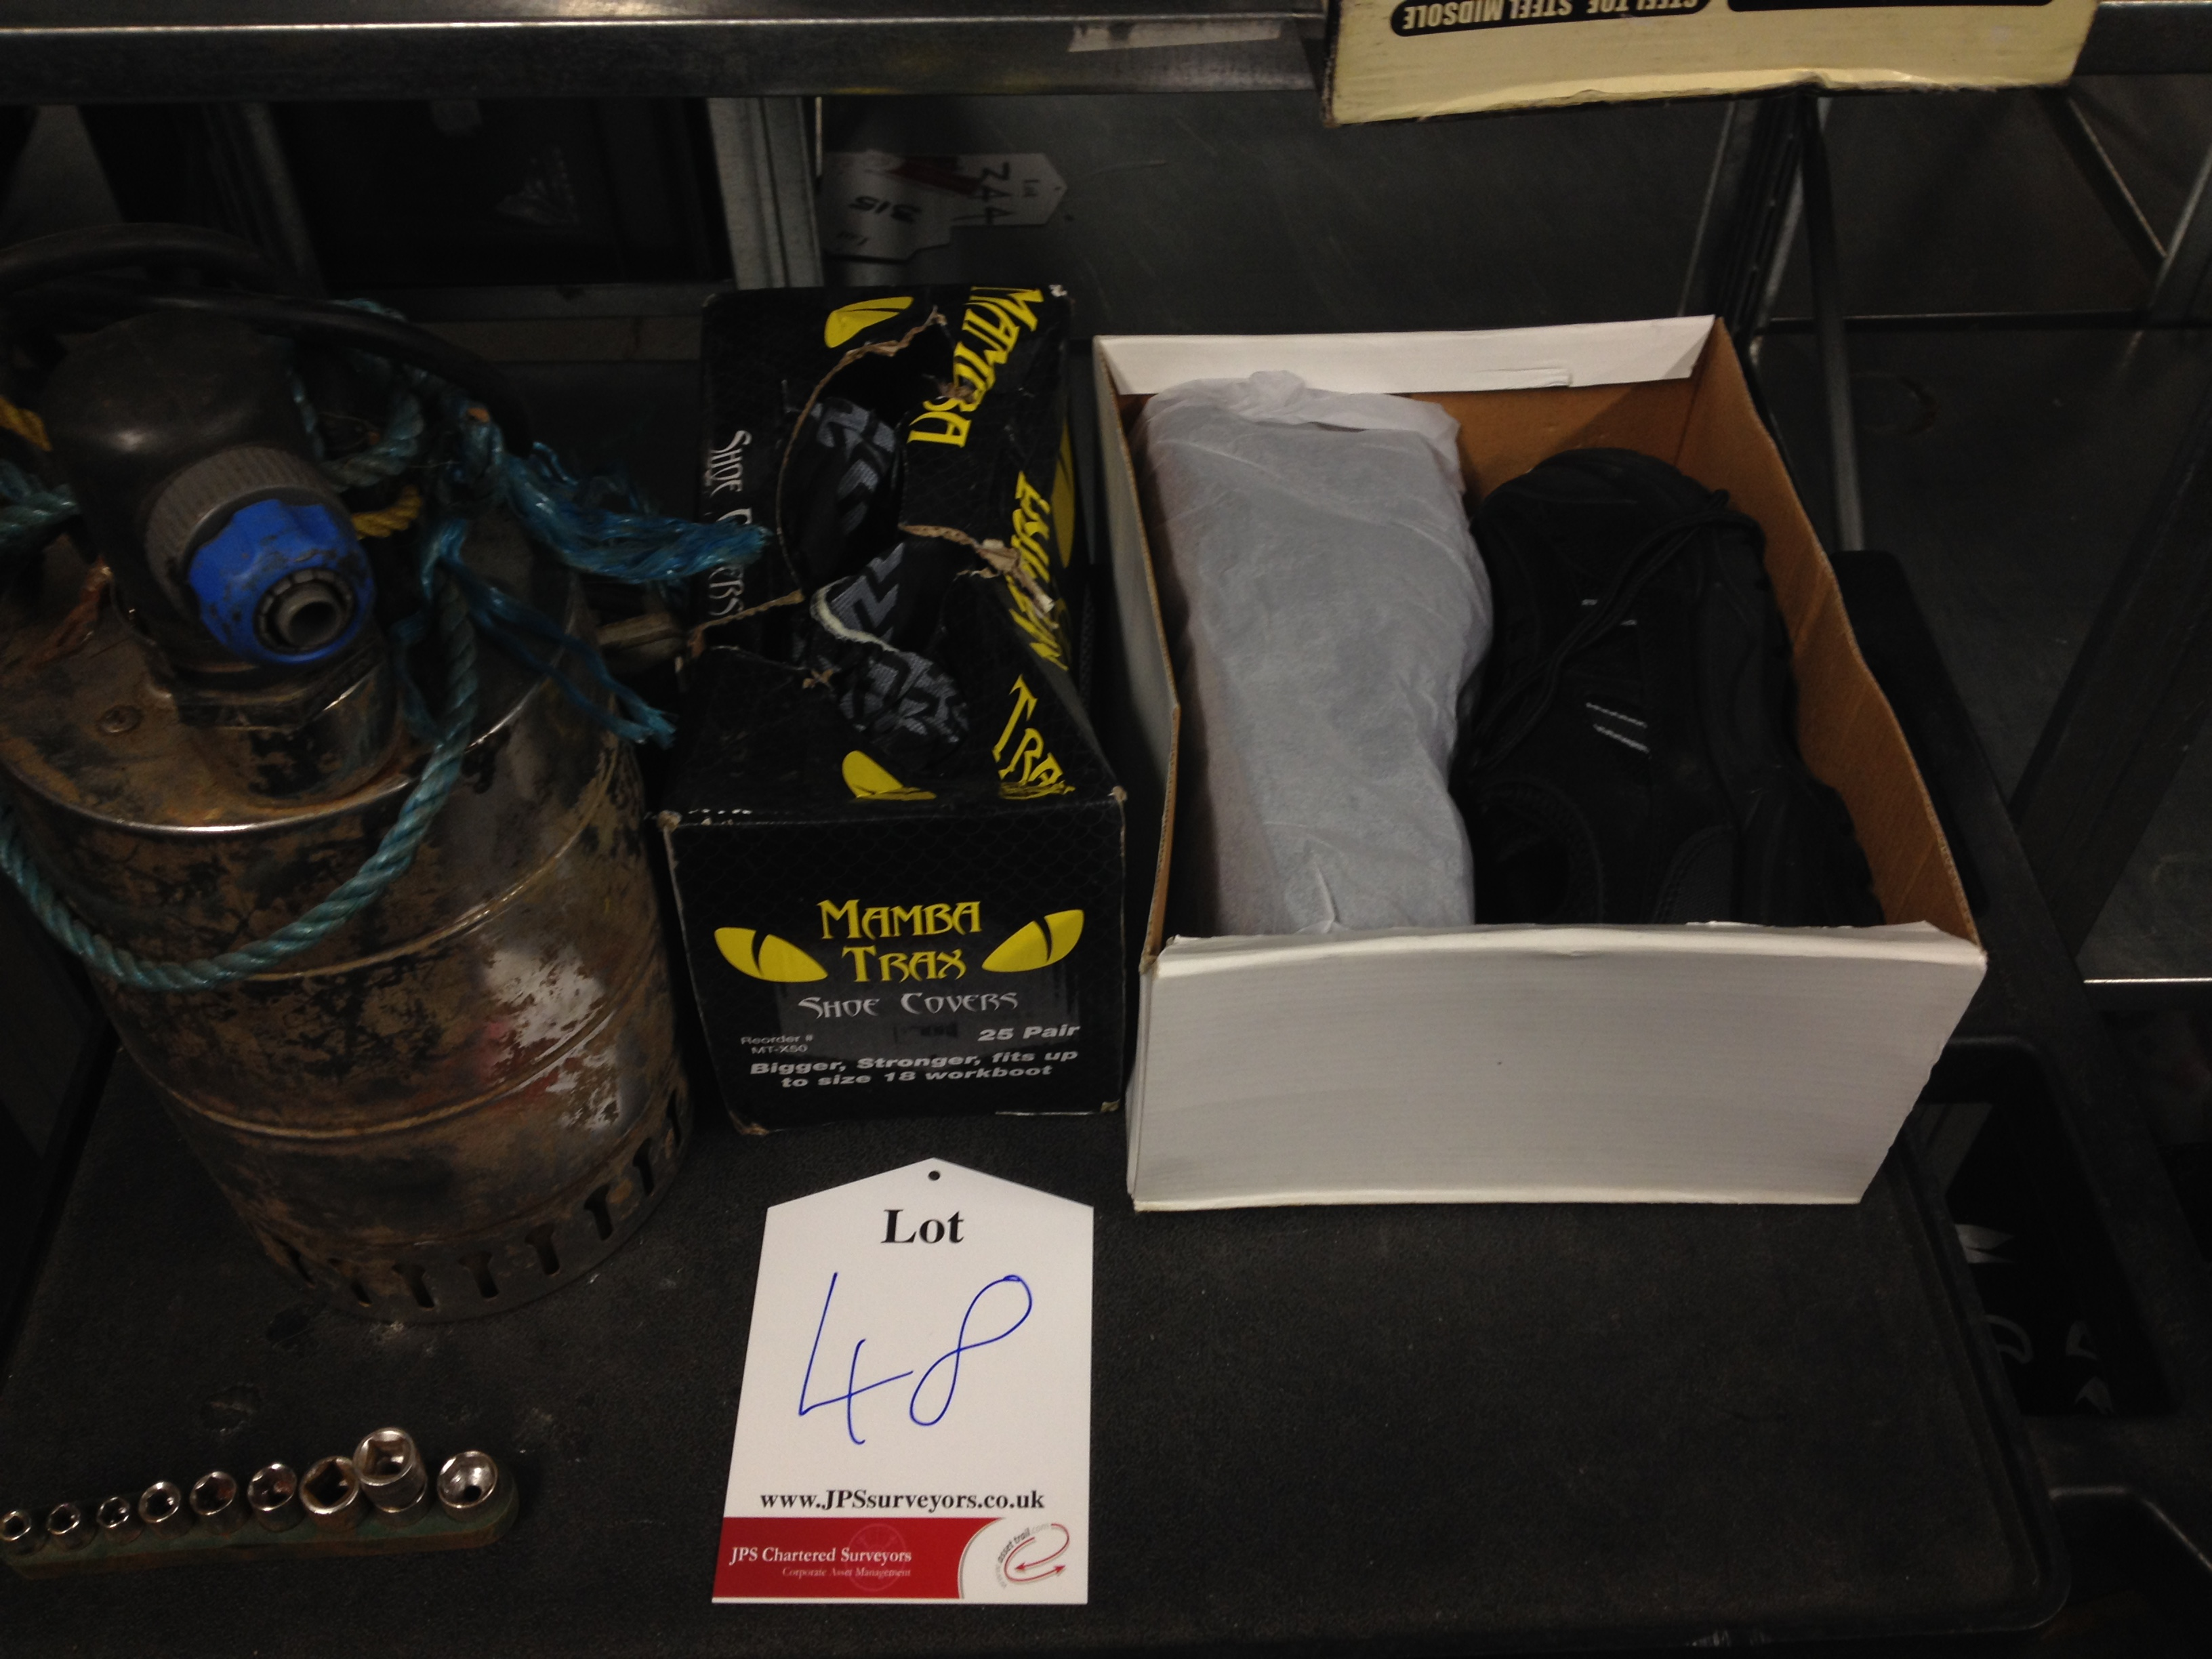 1 x Pair of Apache Industrial Steel Toe Cap Boots (Size 6), 1 x Box of Shoe Covers